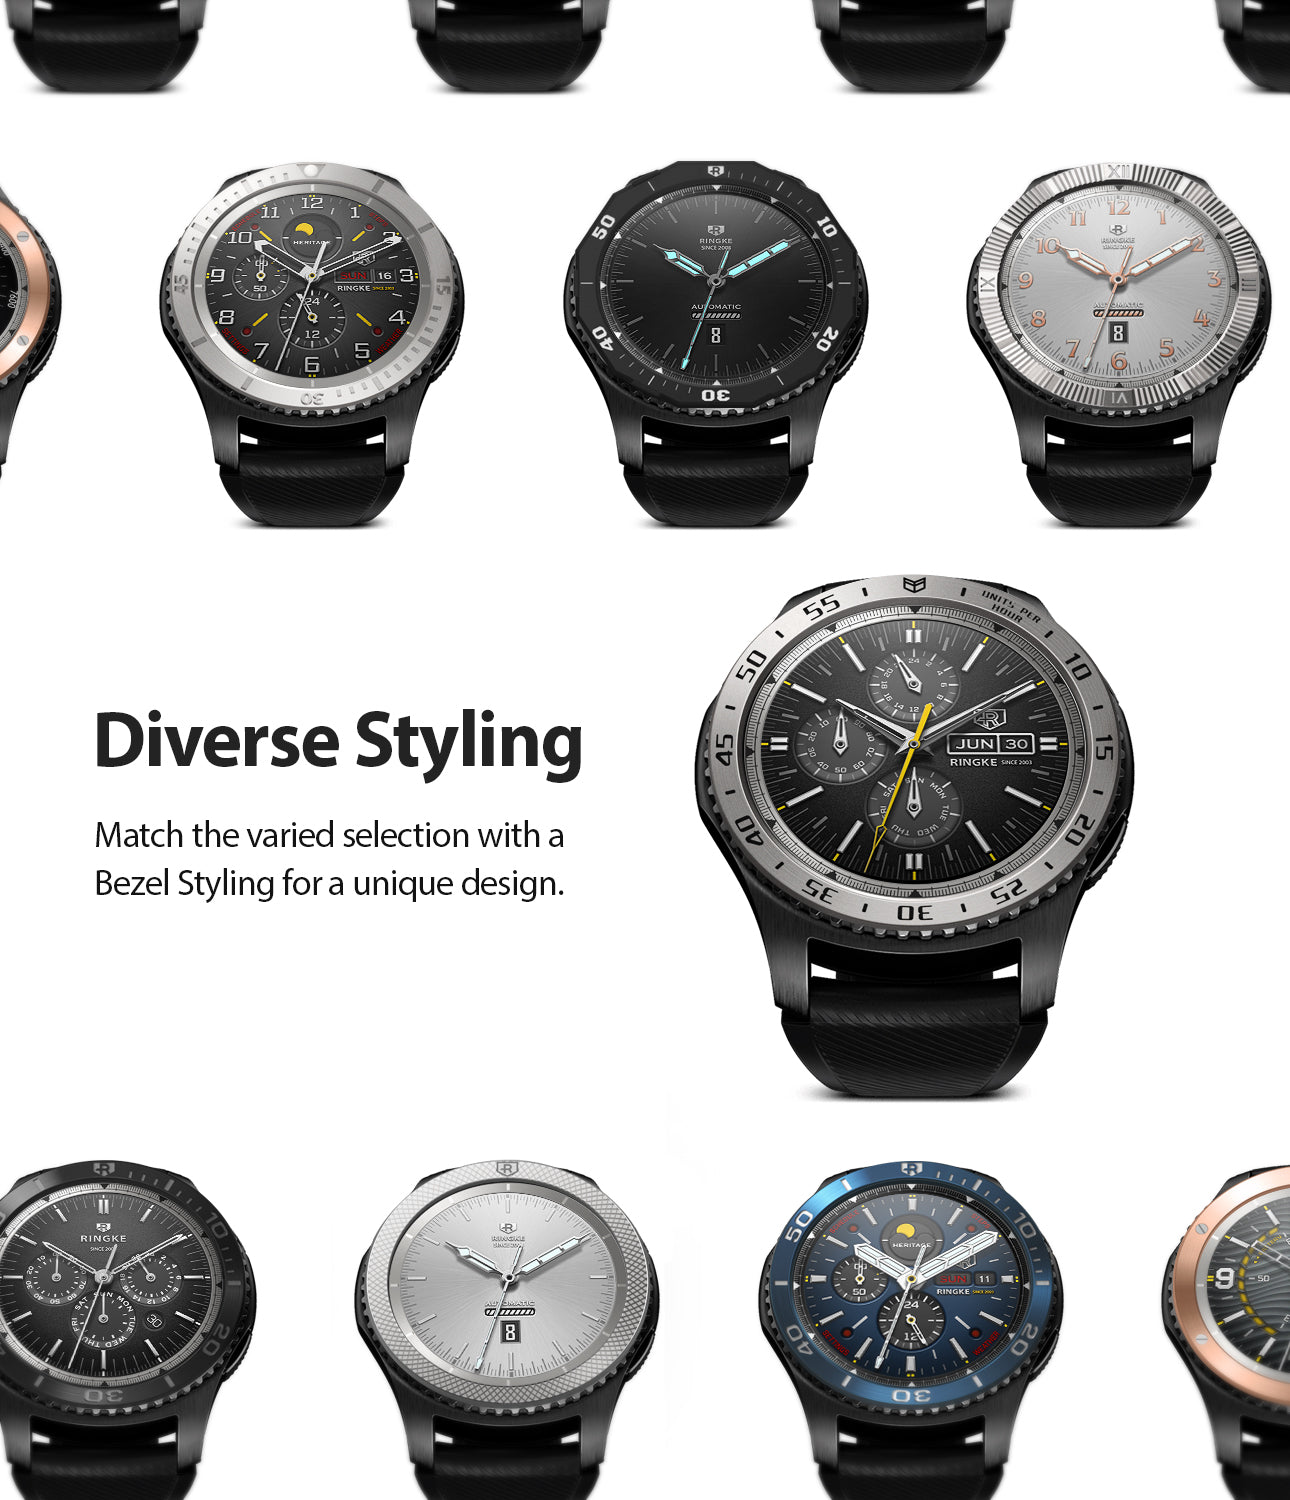 Ringke Inner Bezel Styling for Galaxy Watch 46mm, Gear S3 Frontier, Classic, GW-46-IN-01, DIVERSE STYLING